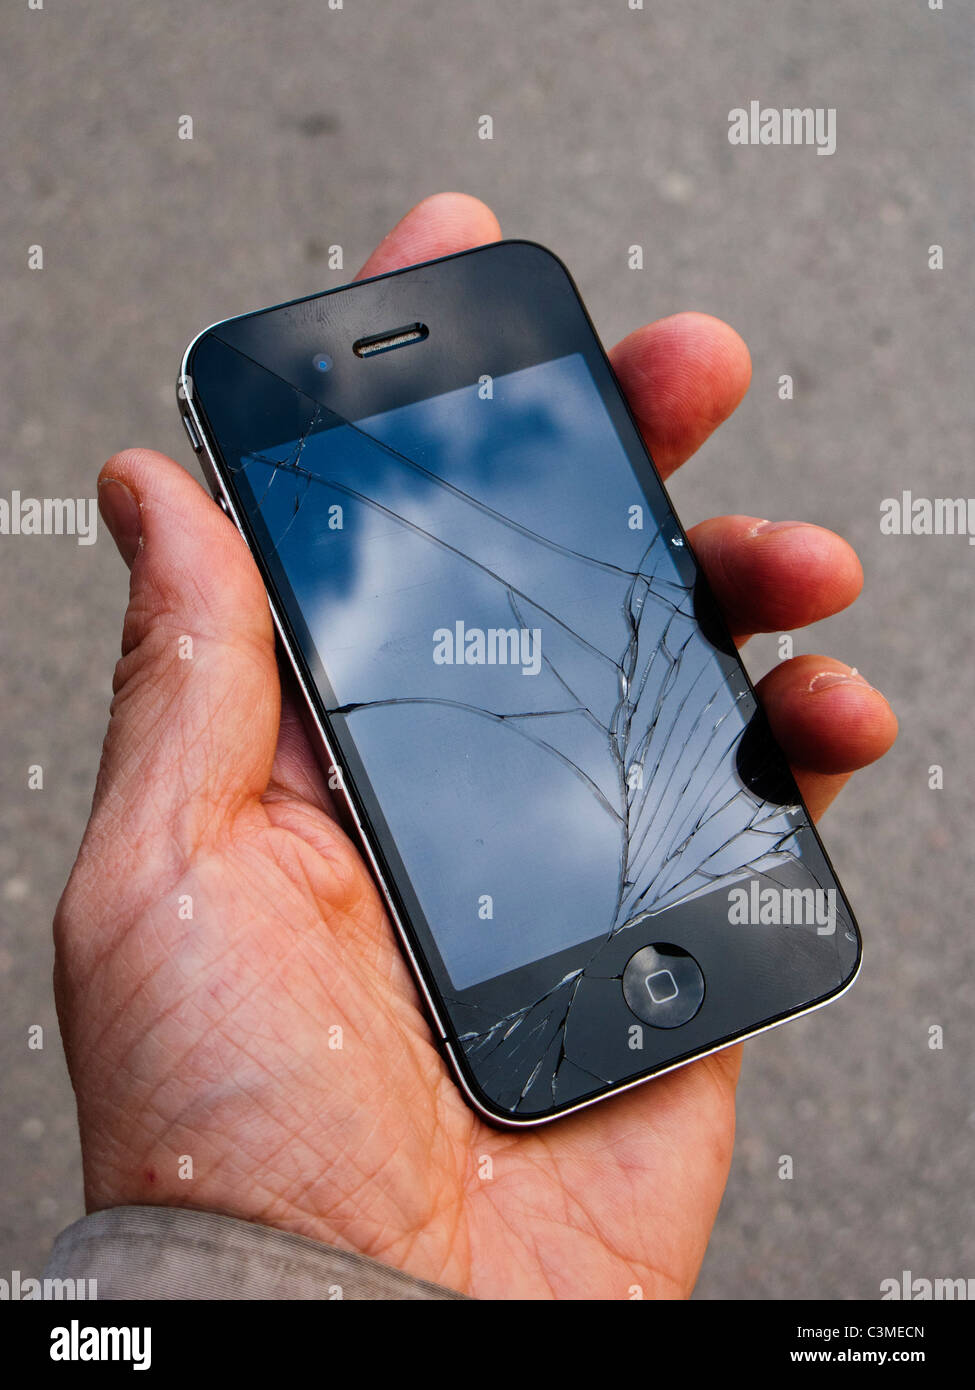 Cracked glass of an iPhone 4 in the palm of a hand - Stock Image